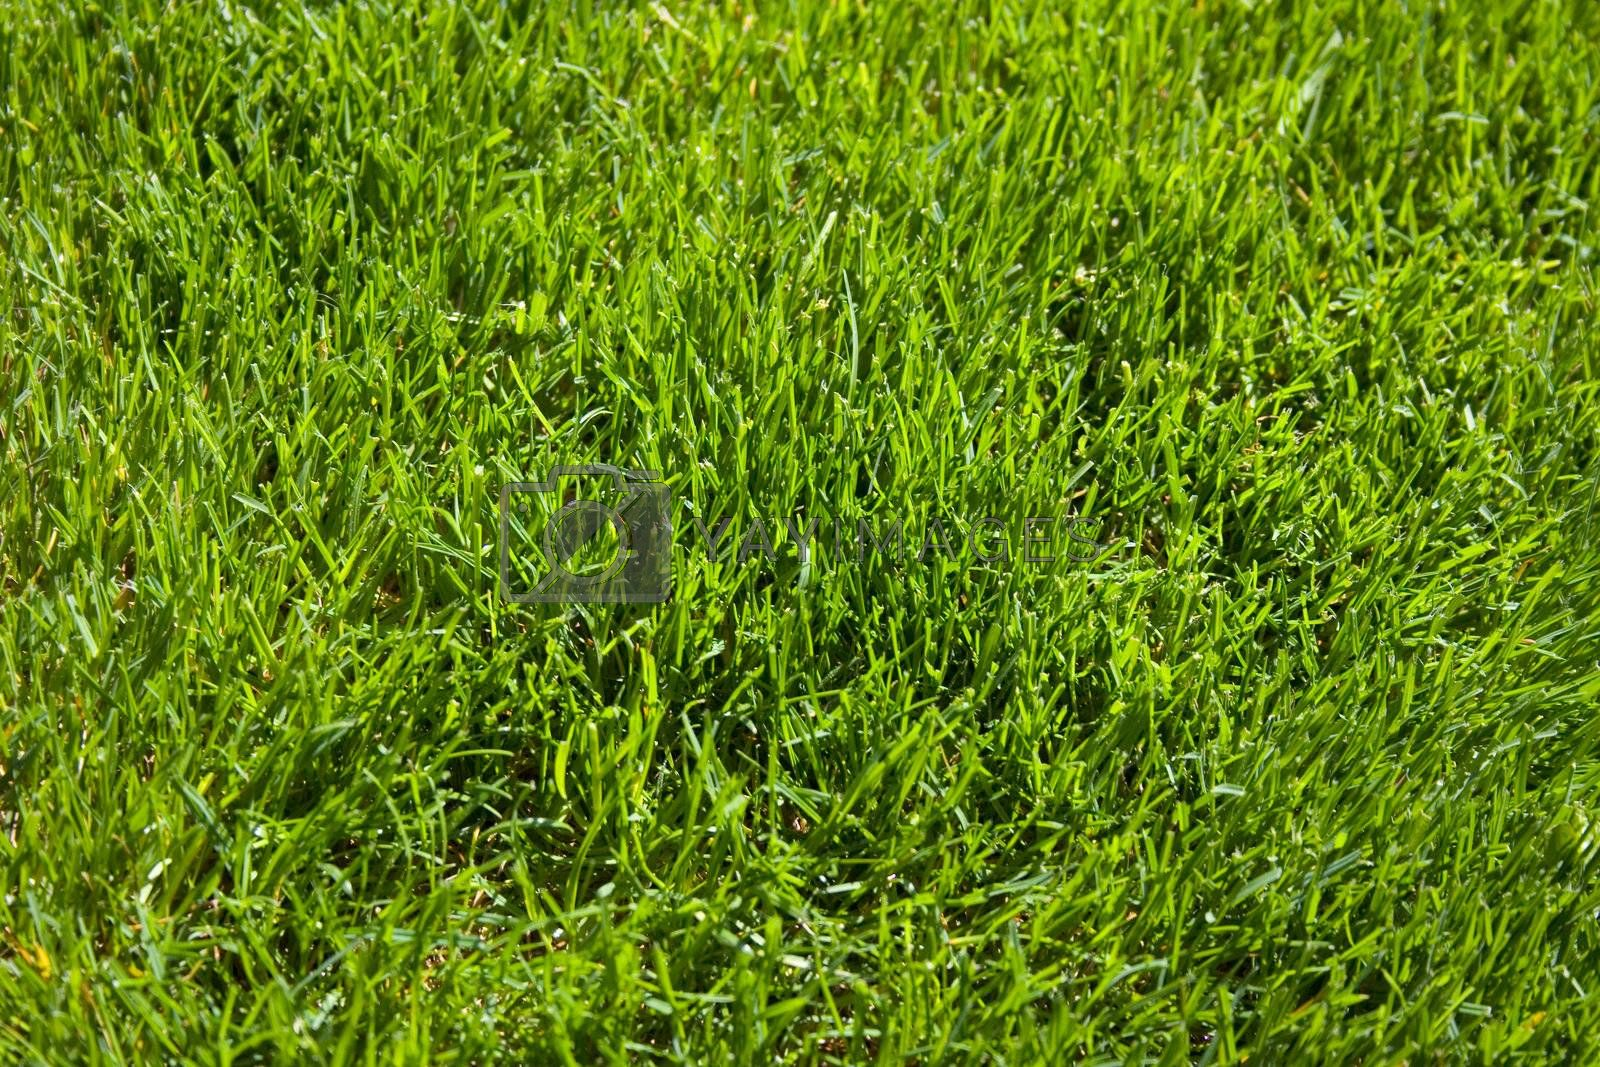 A close-up of a patch of grass to be used as a background texture.